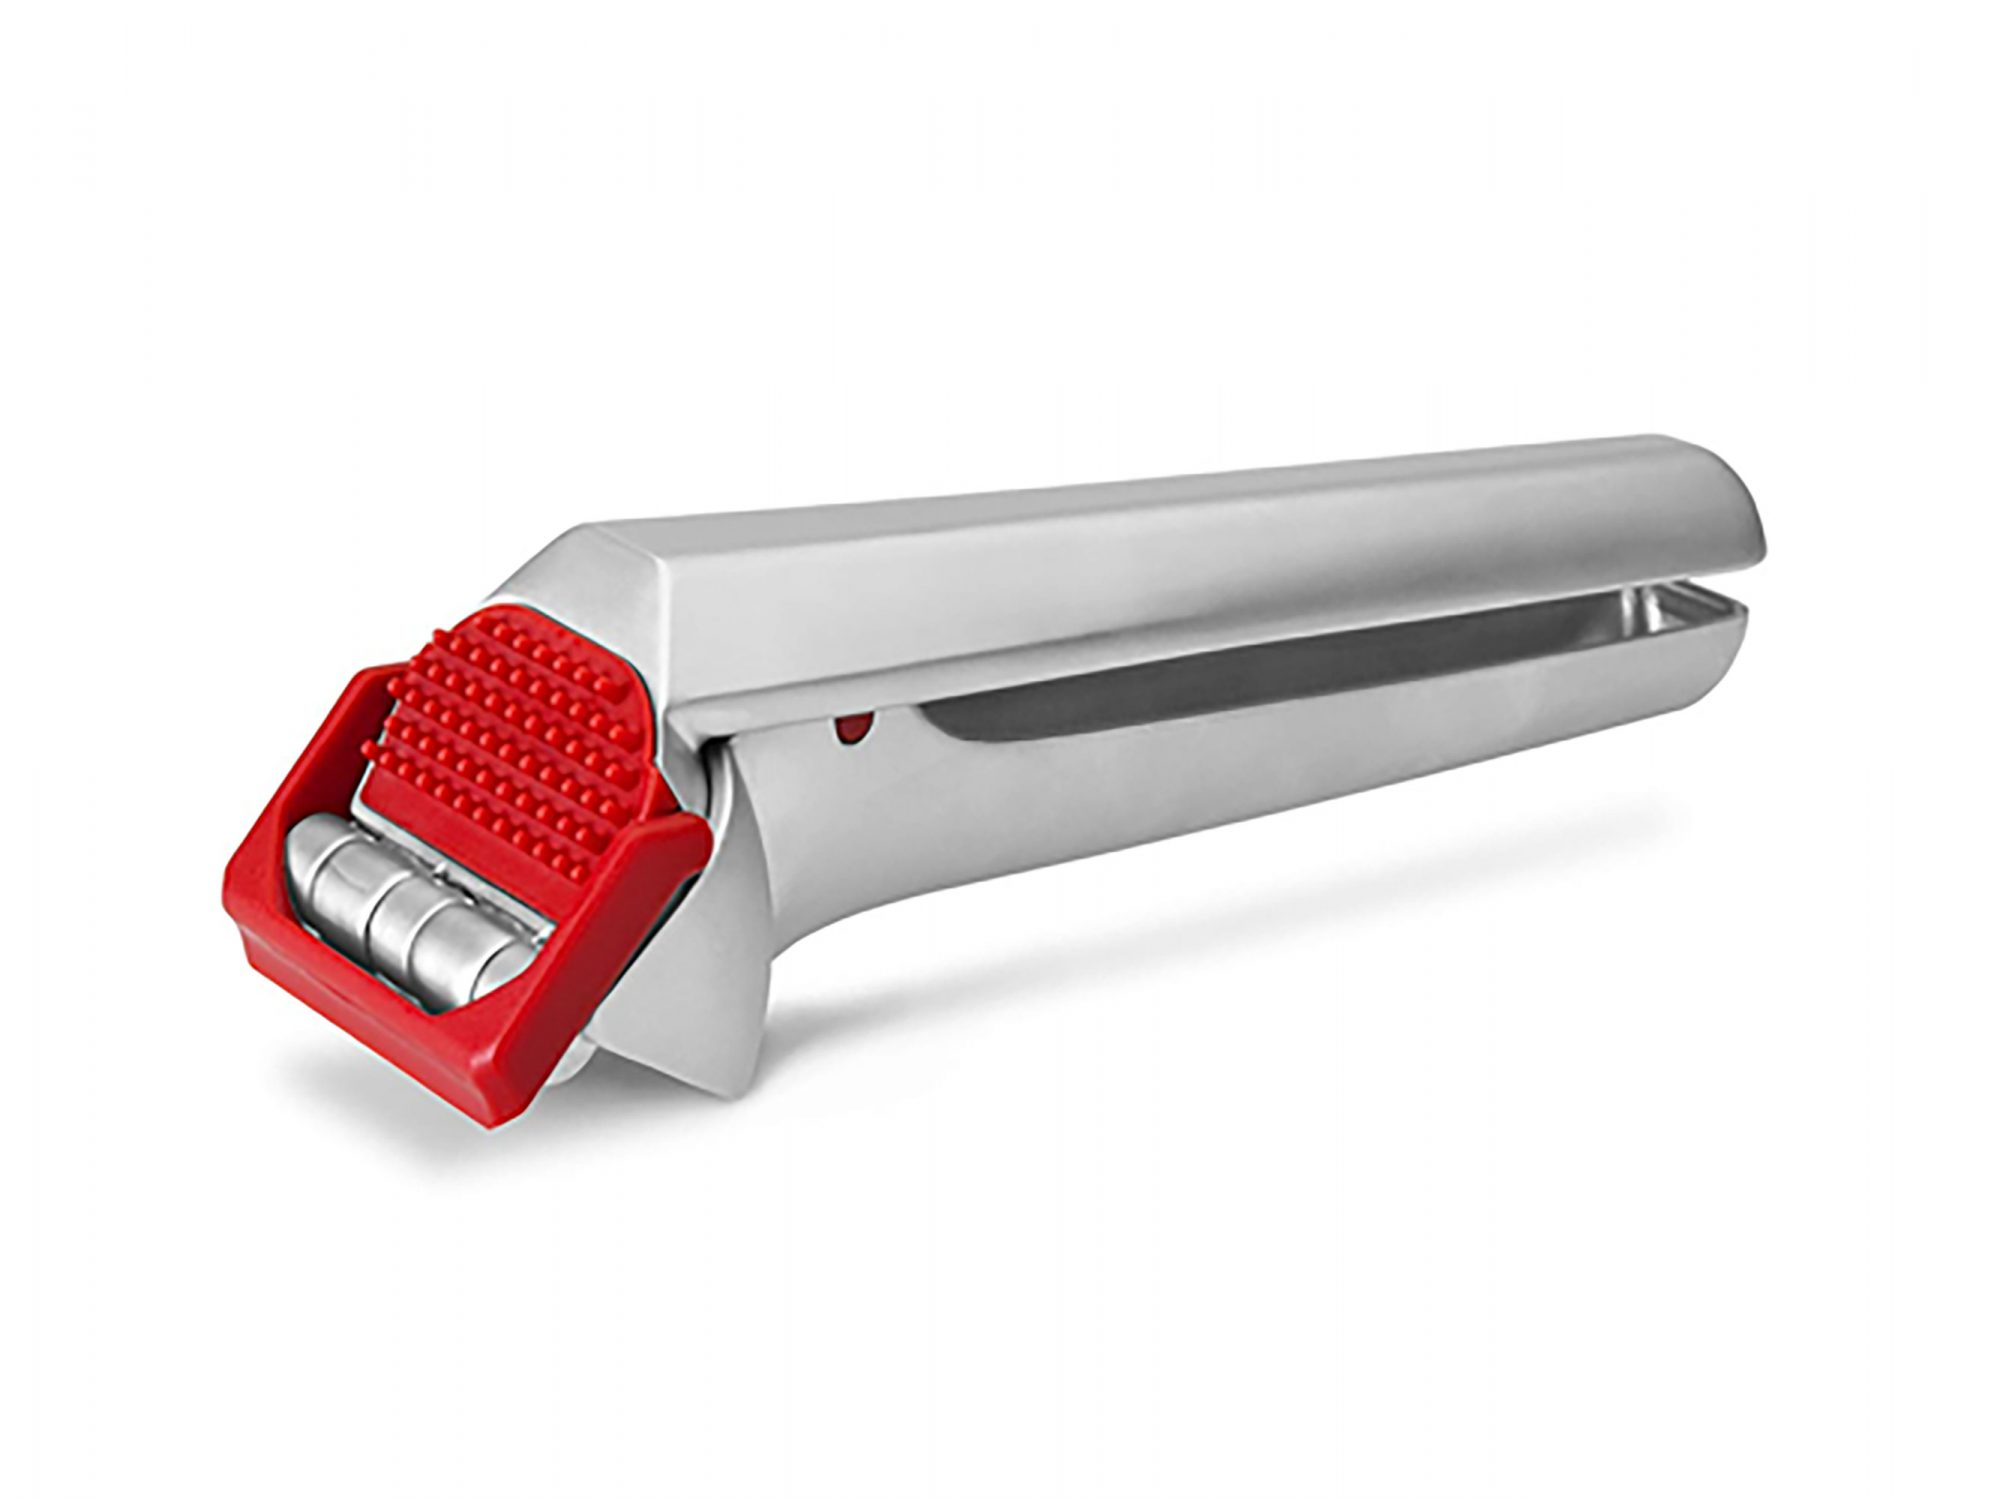 Dreamfarm Garject Self-Cleaning Garlic Press with Peel Eject